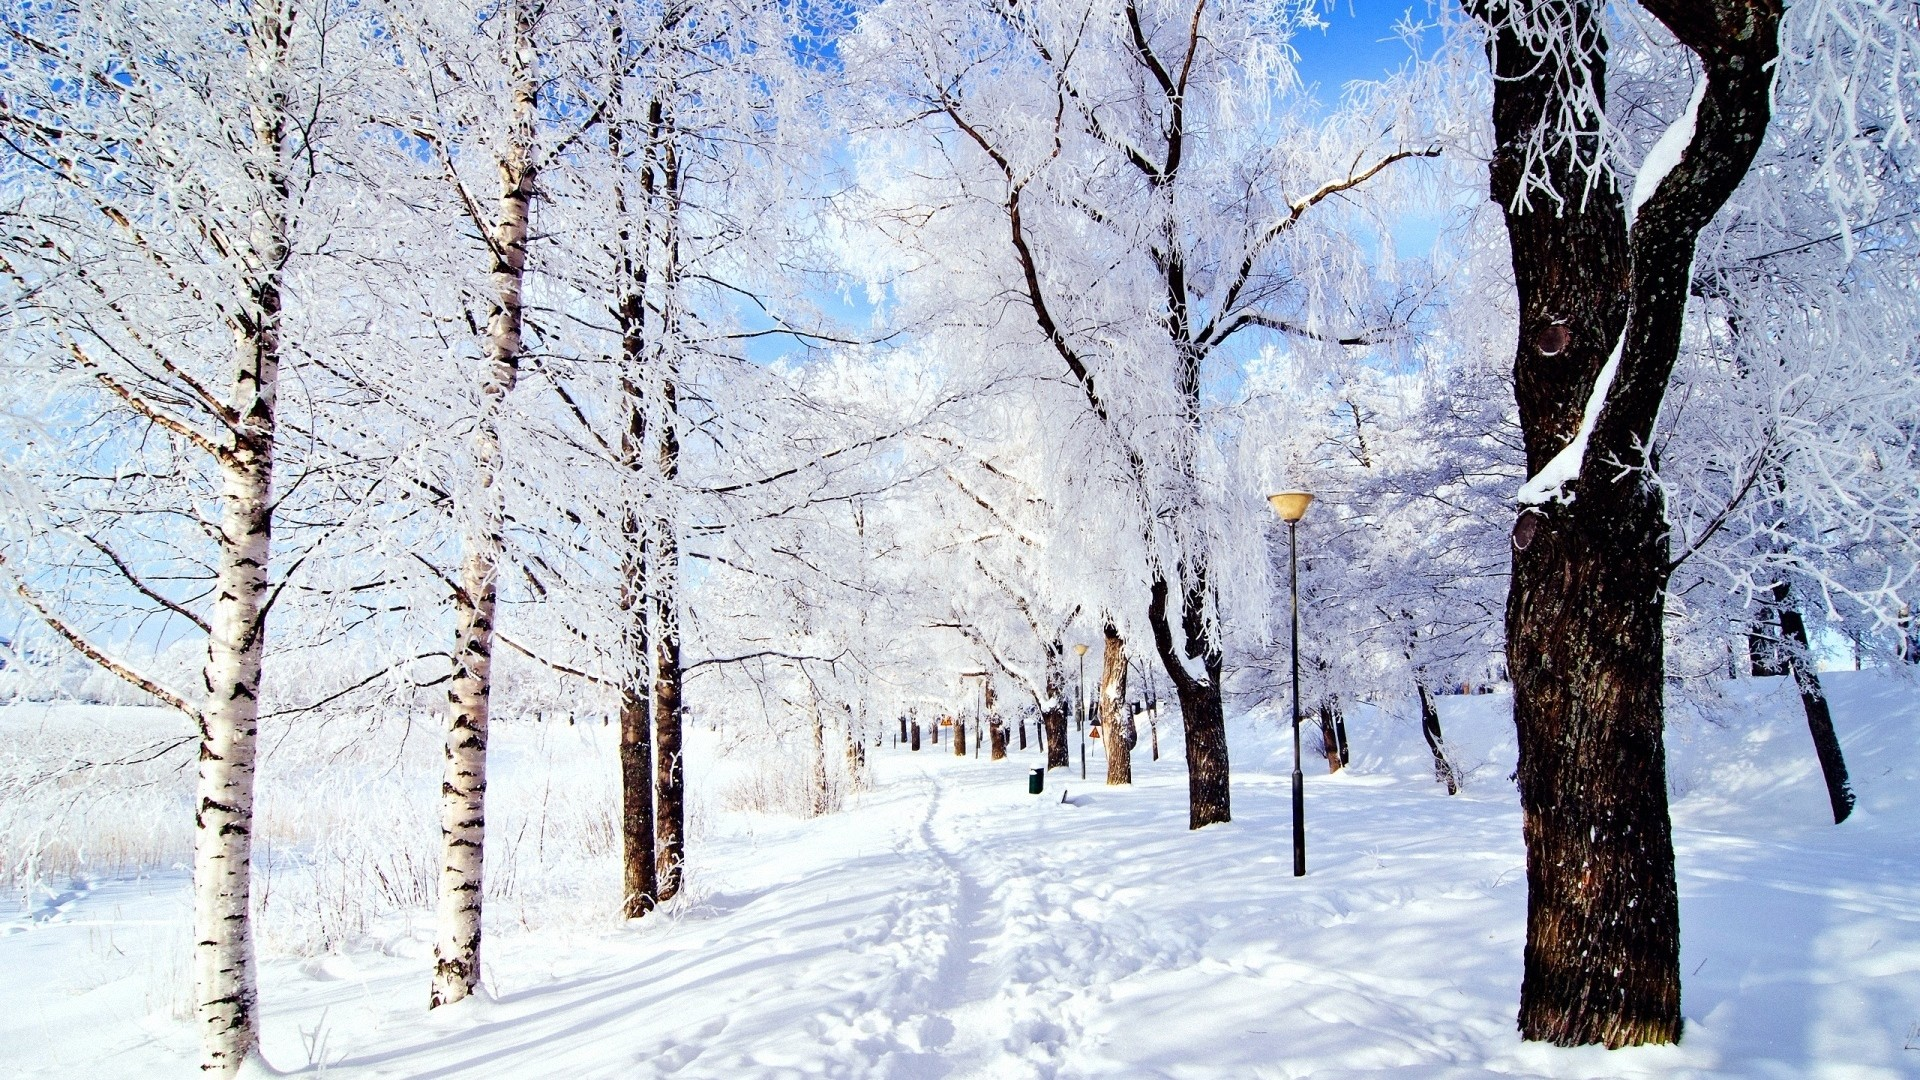 Wallpaper trail, trees, snow, frost, day, winter